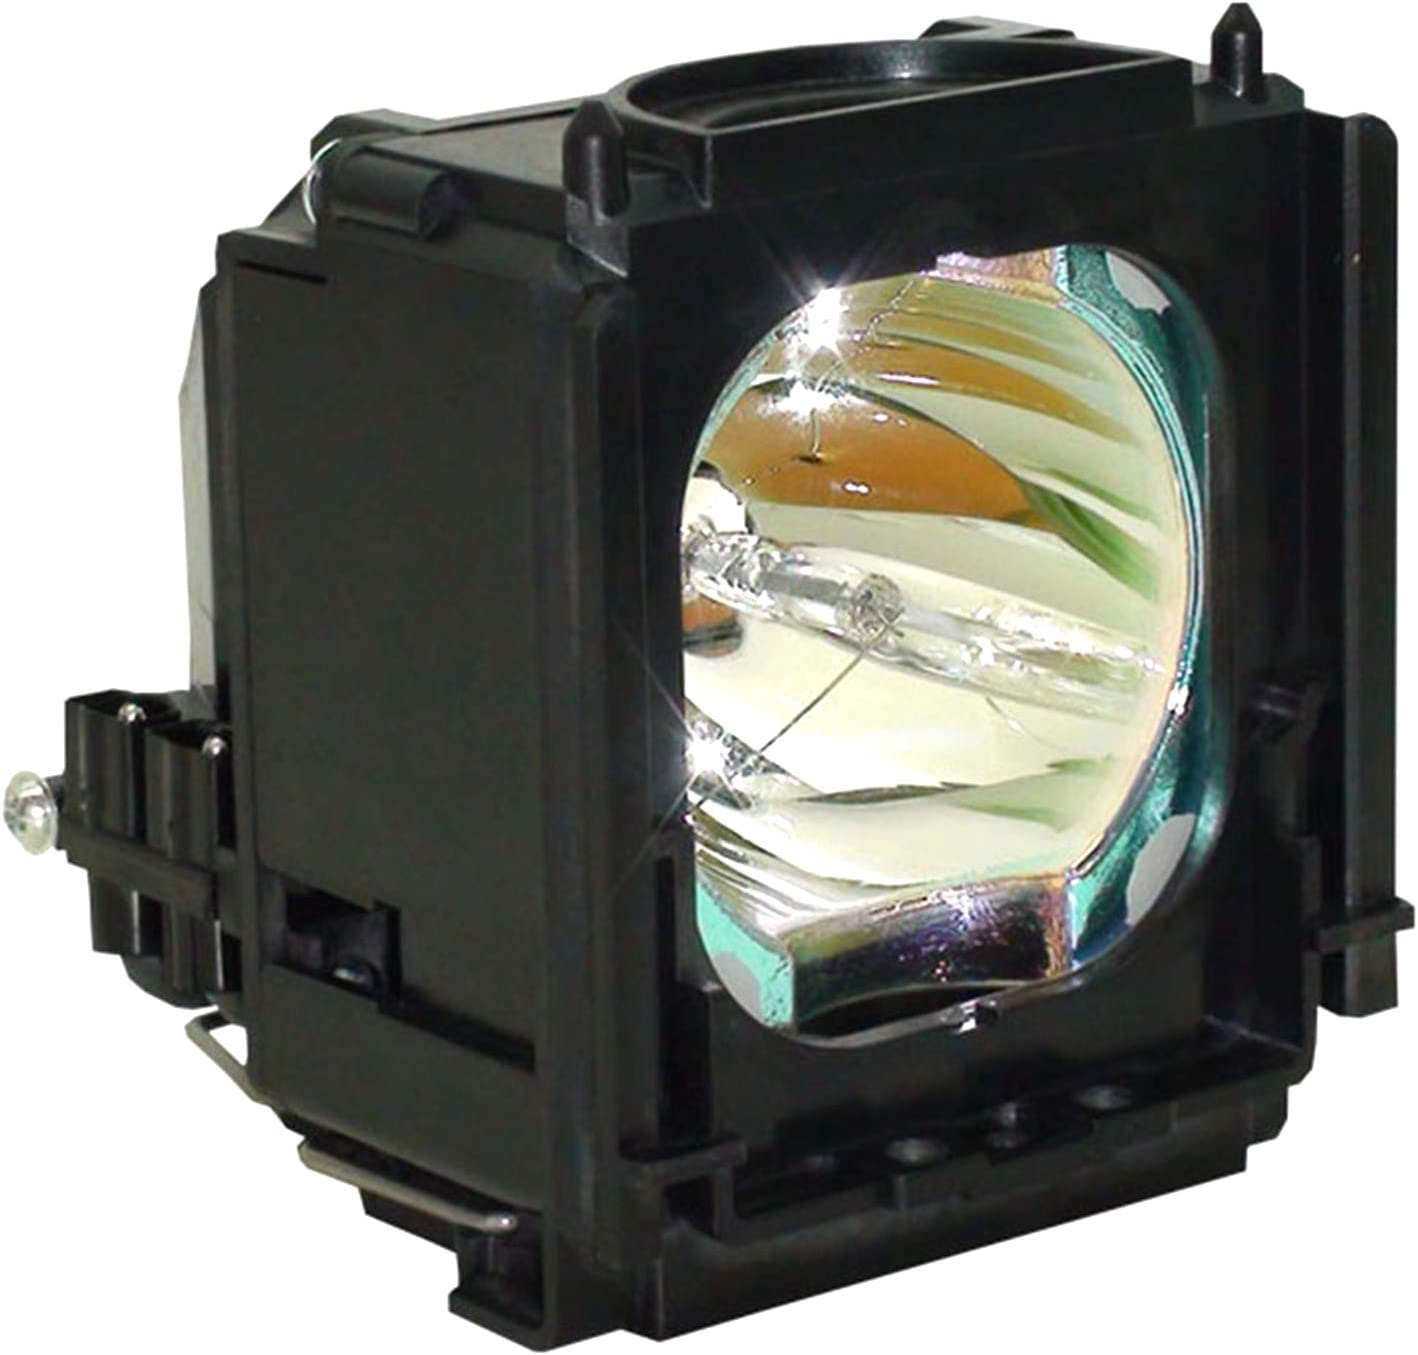 Visdia BP96-01472A TV Premium Replacement Projector Lamp with Housing for Samsung HLS5065W HLS5065WX HLS5686W HLS4265W HLS4266W HLS4266WX HLS4666W HLS4666WX HLS5055W HLS4266W Projector